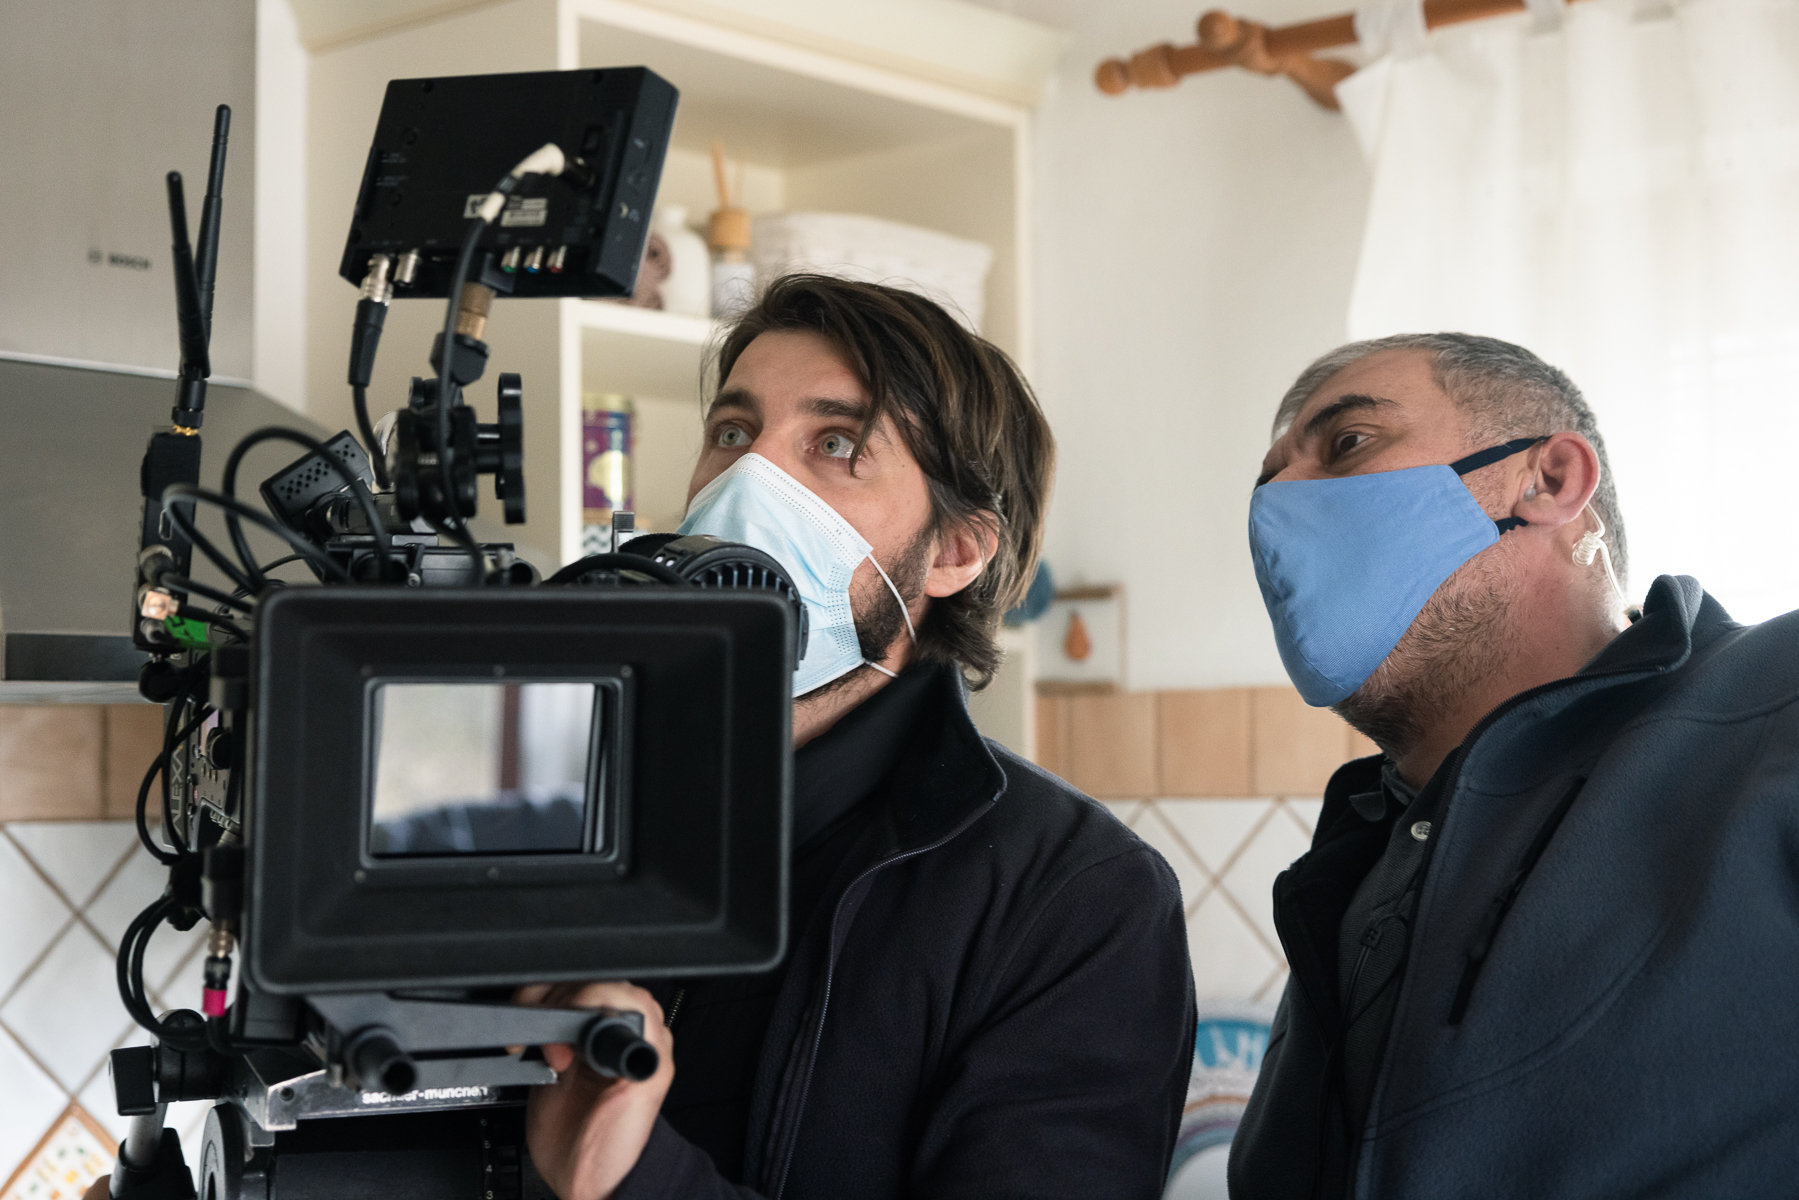 Director of photography Ivan Zadro on the set of Wake Me.